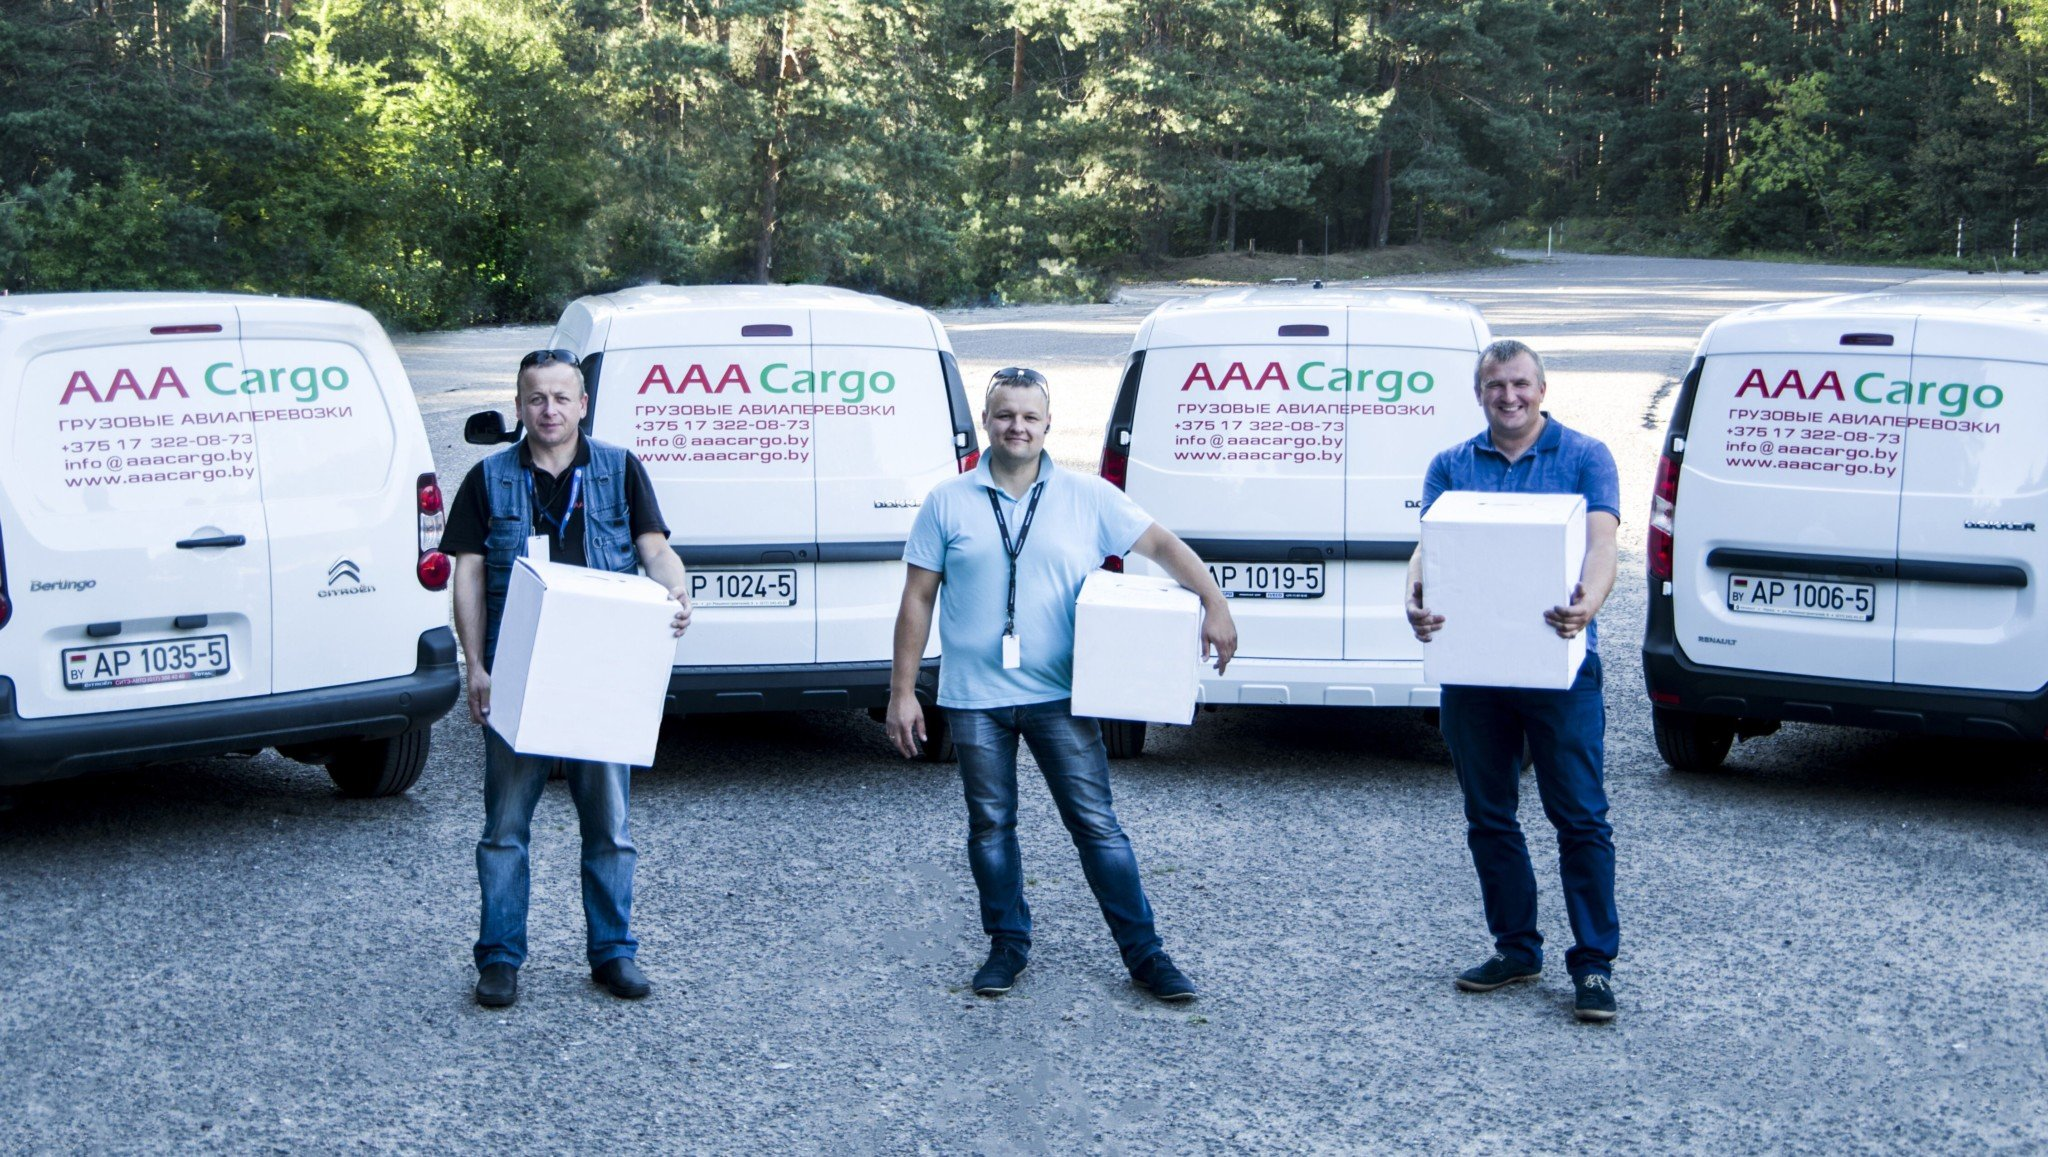 THE WACO SYSTEM APPOINTS AAA-A2 CARGO AS ITS MEMBER FOR RUSSIA